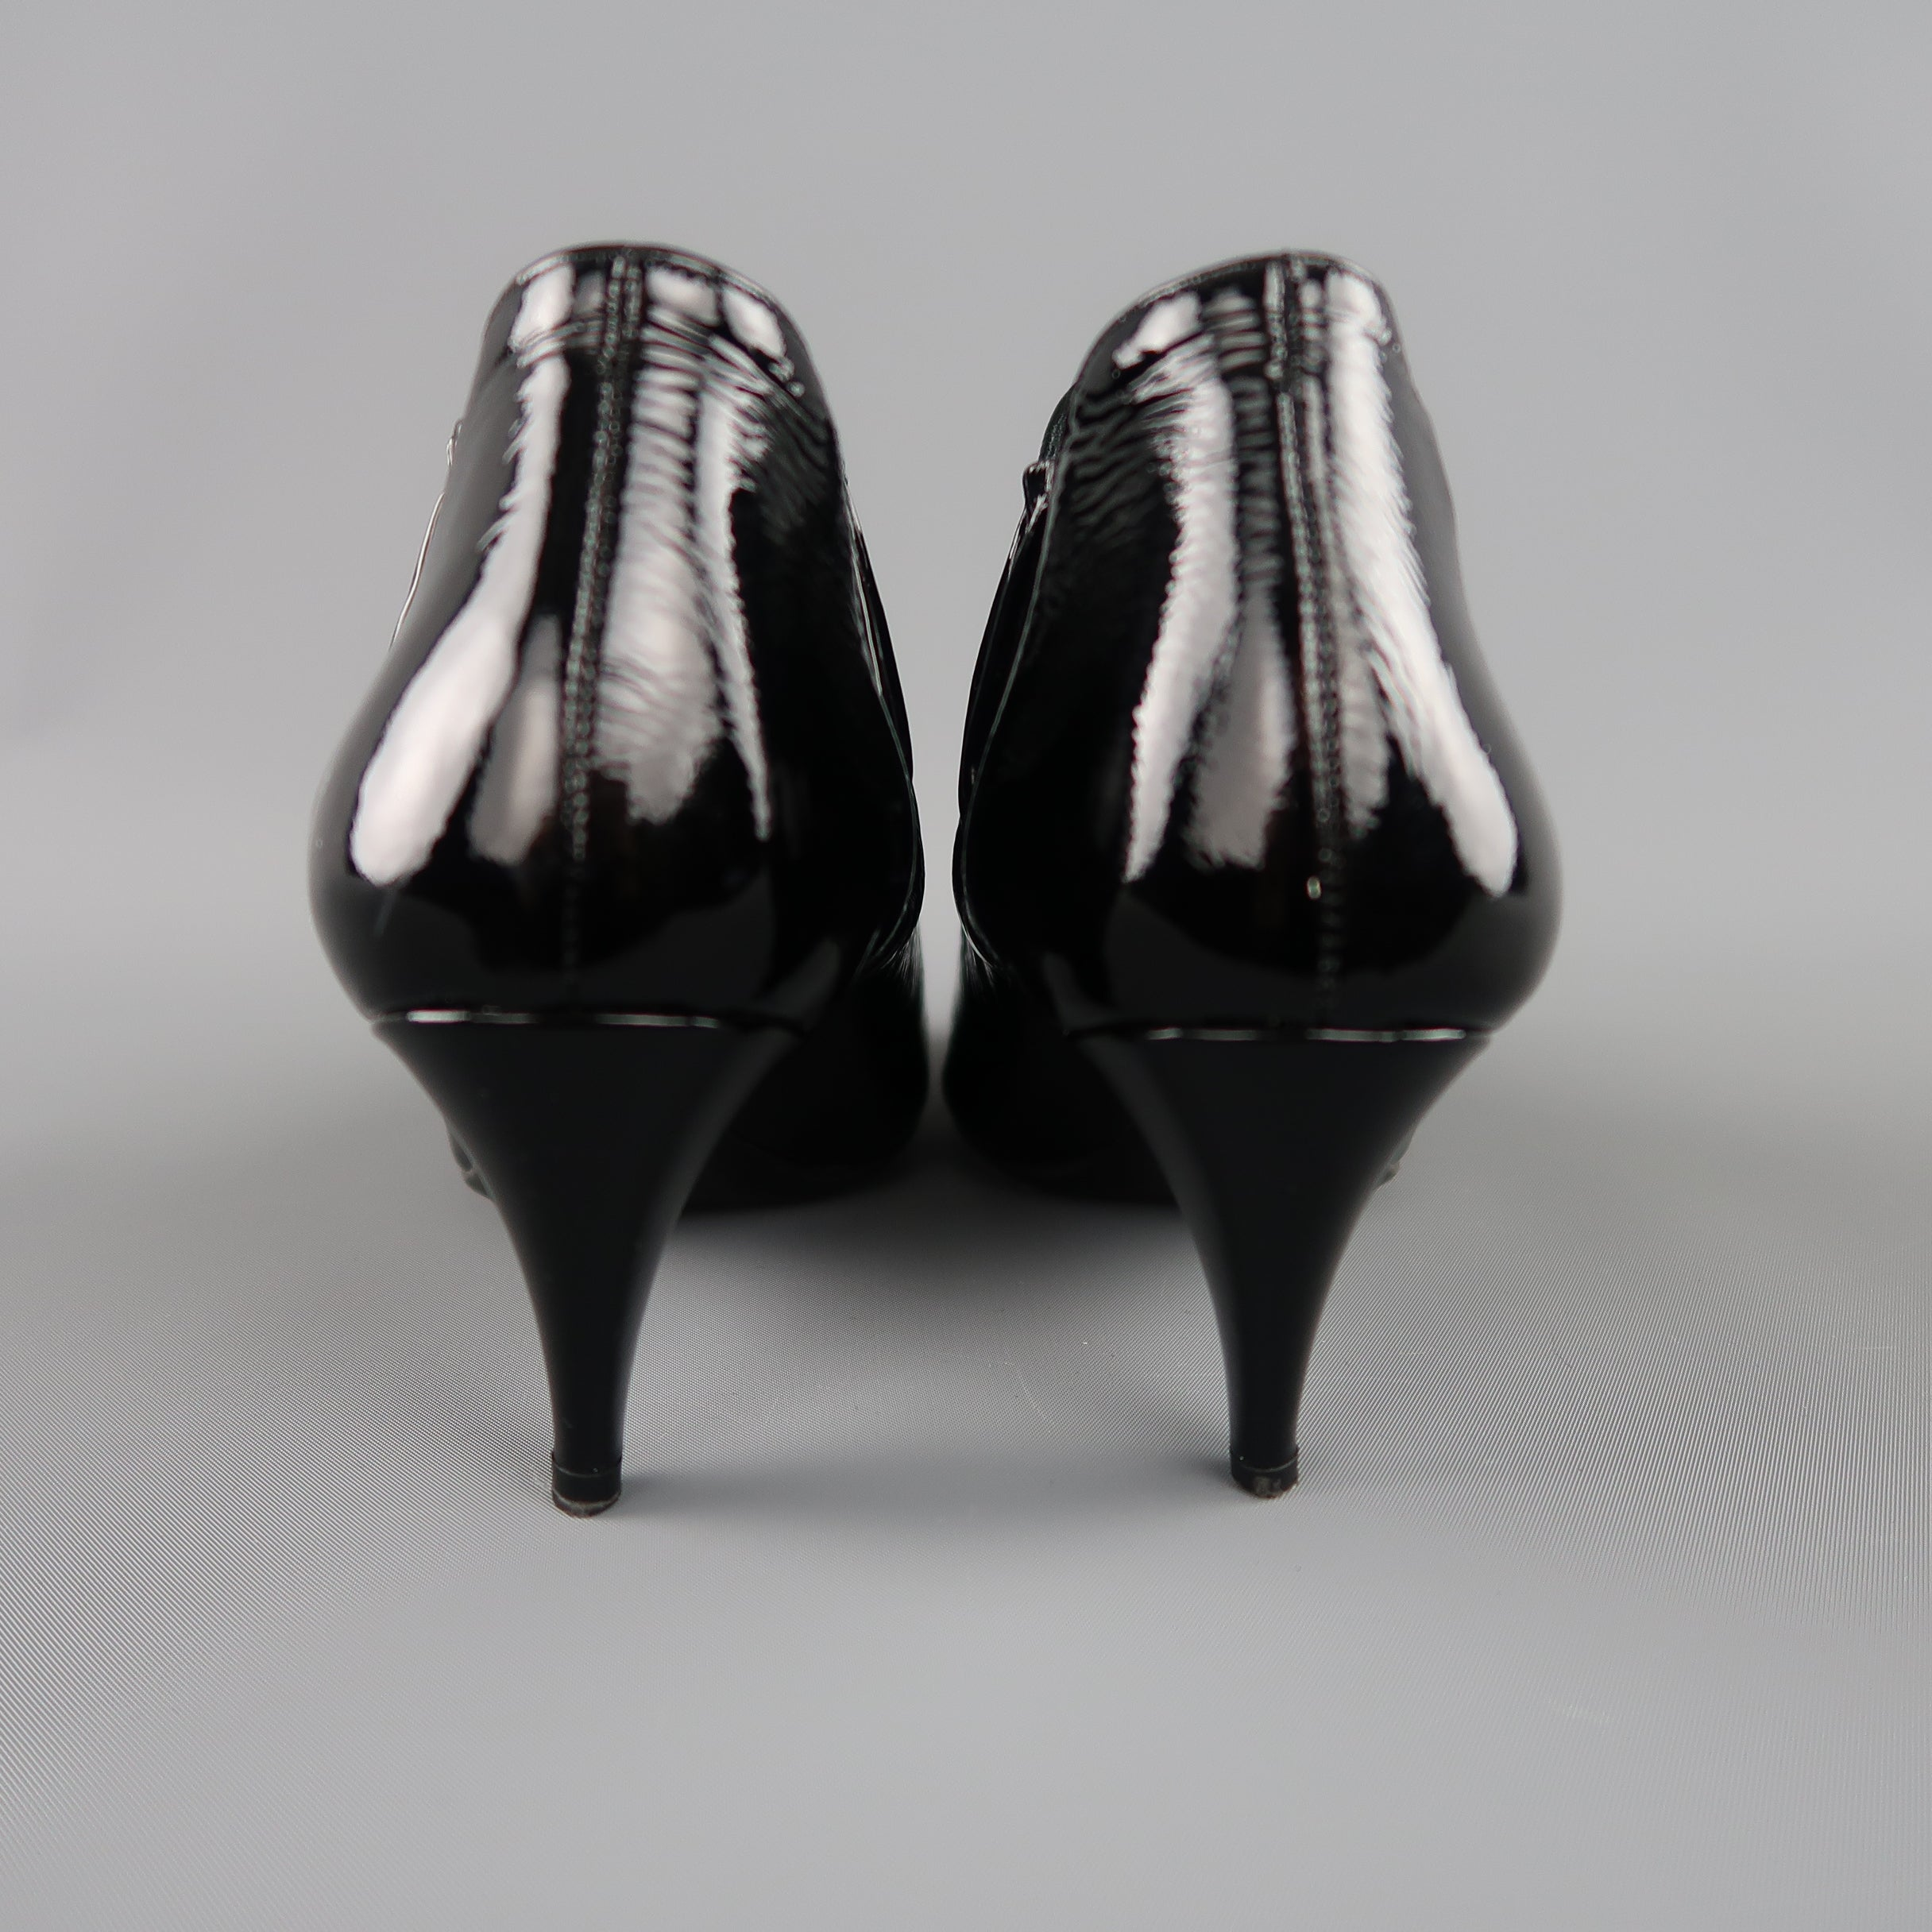 c5da9acdb204 PRADA Size 7.5 Black Textured Patent Leather Pointed Kitten Heel Booties at  1stdibs